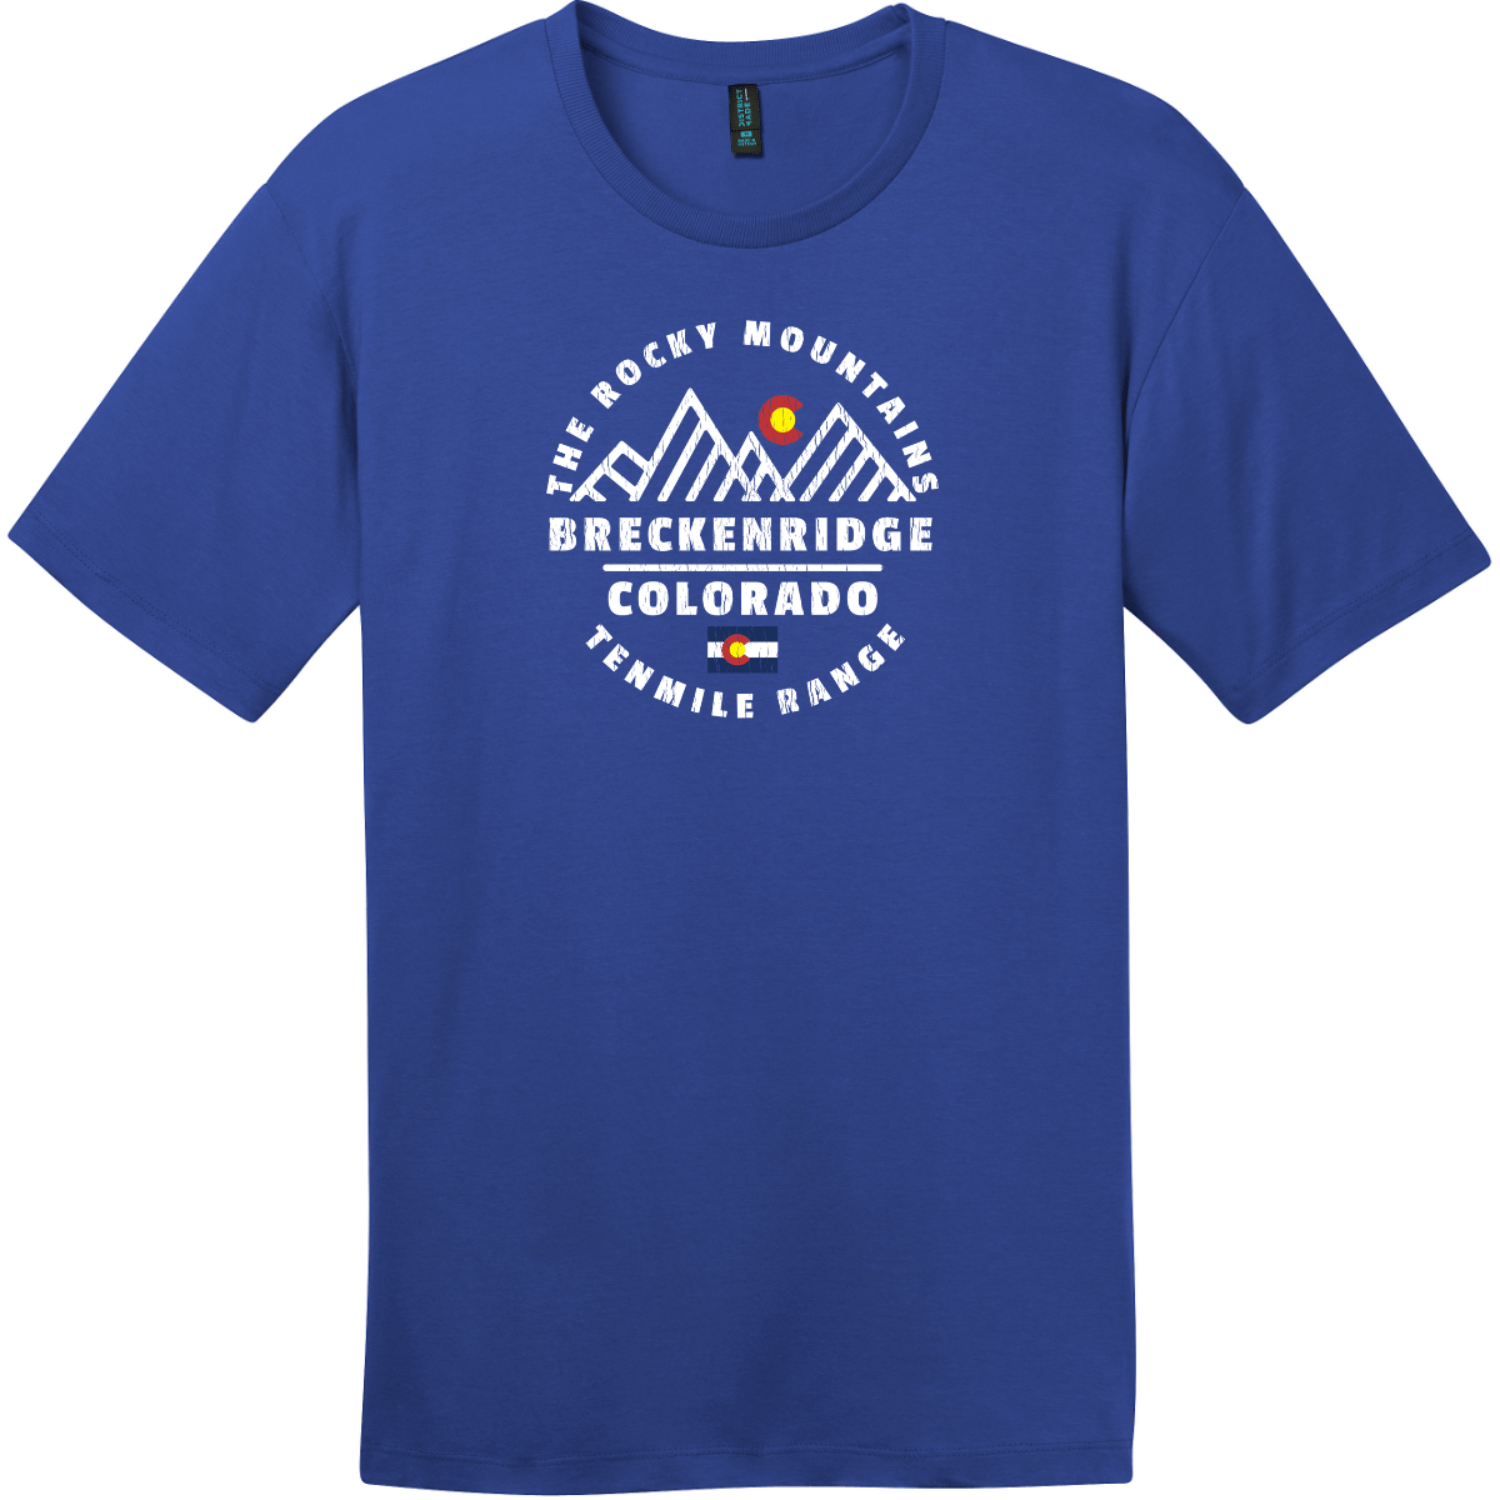 Breckenridge Tenmile Range Mountain T-Shirt Deep Royal District Perfect Weight Tee DT104